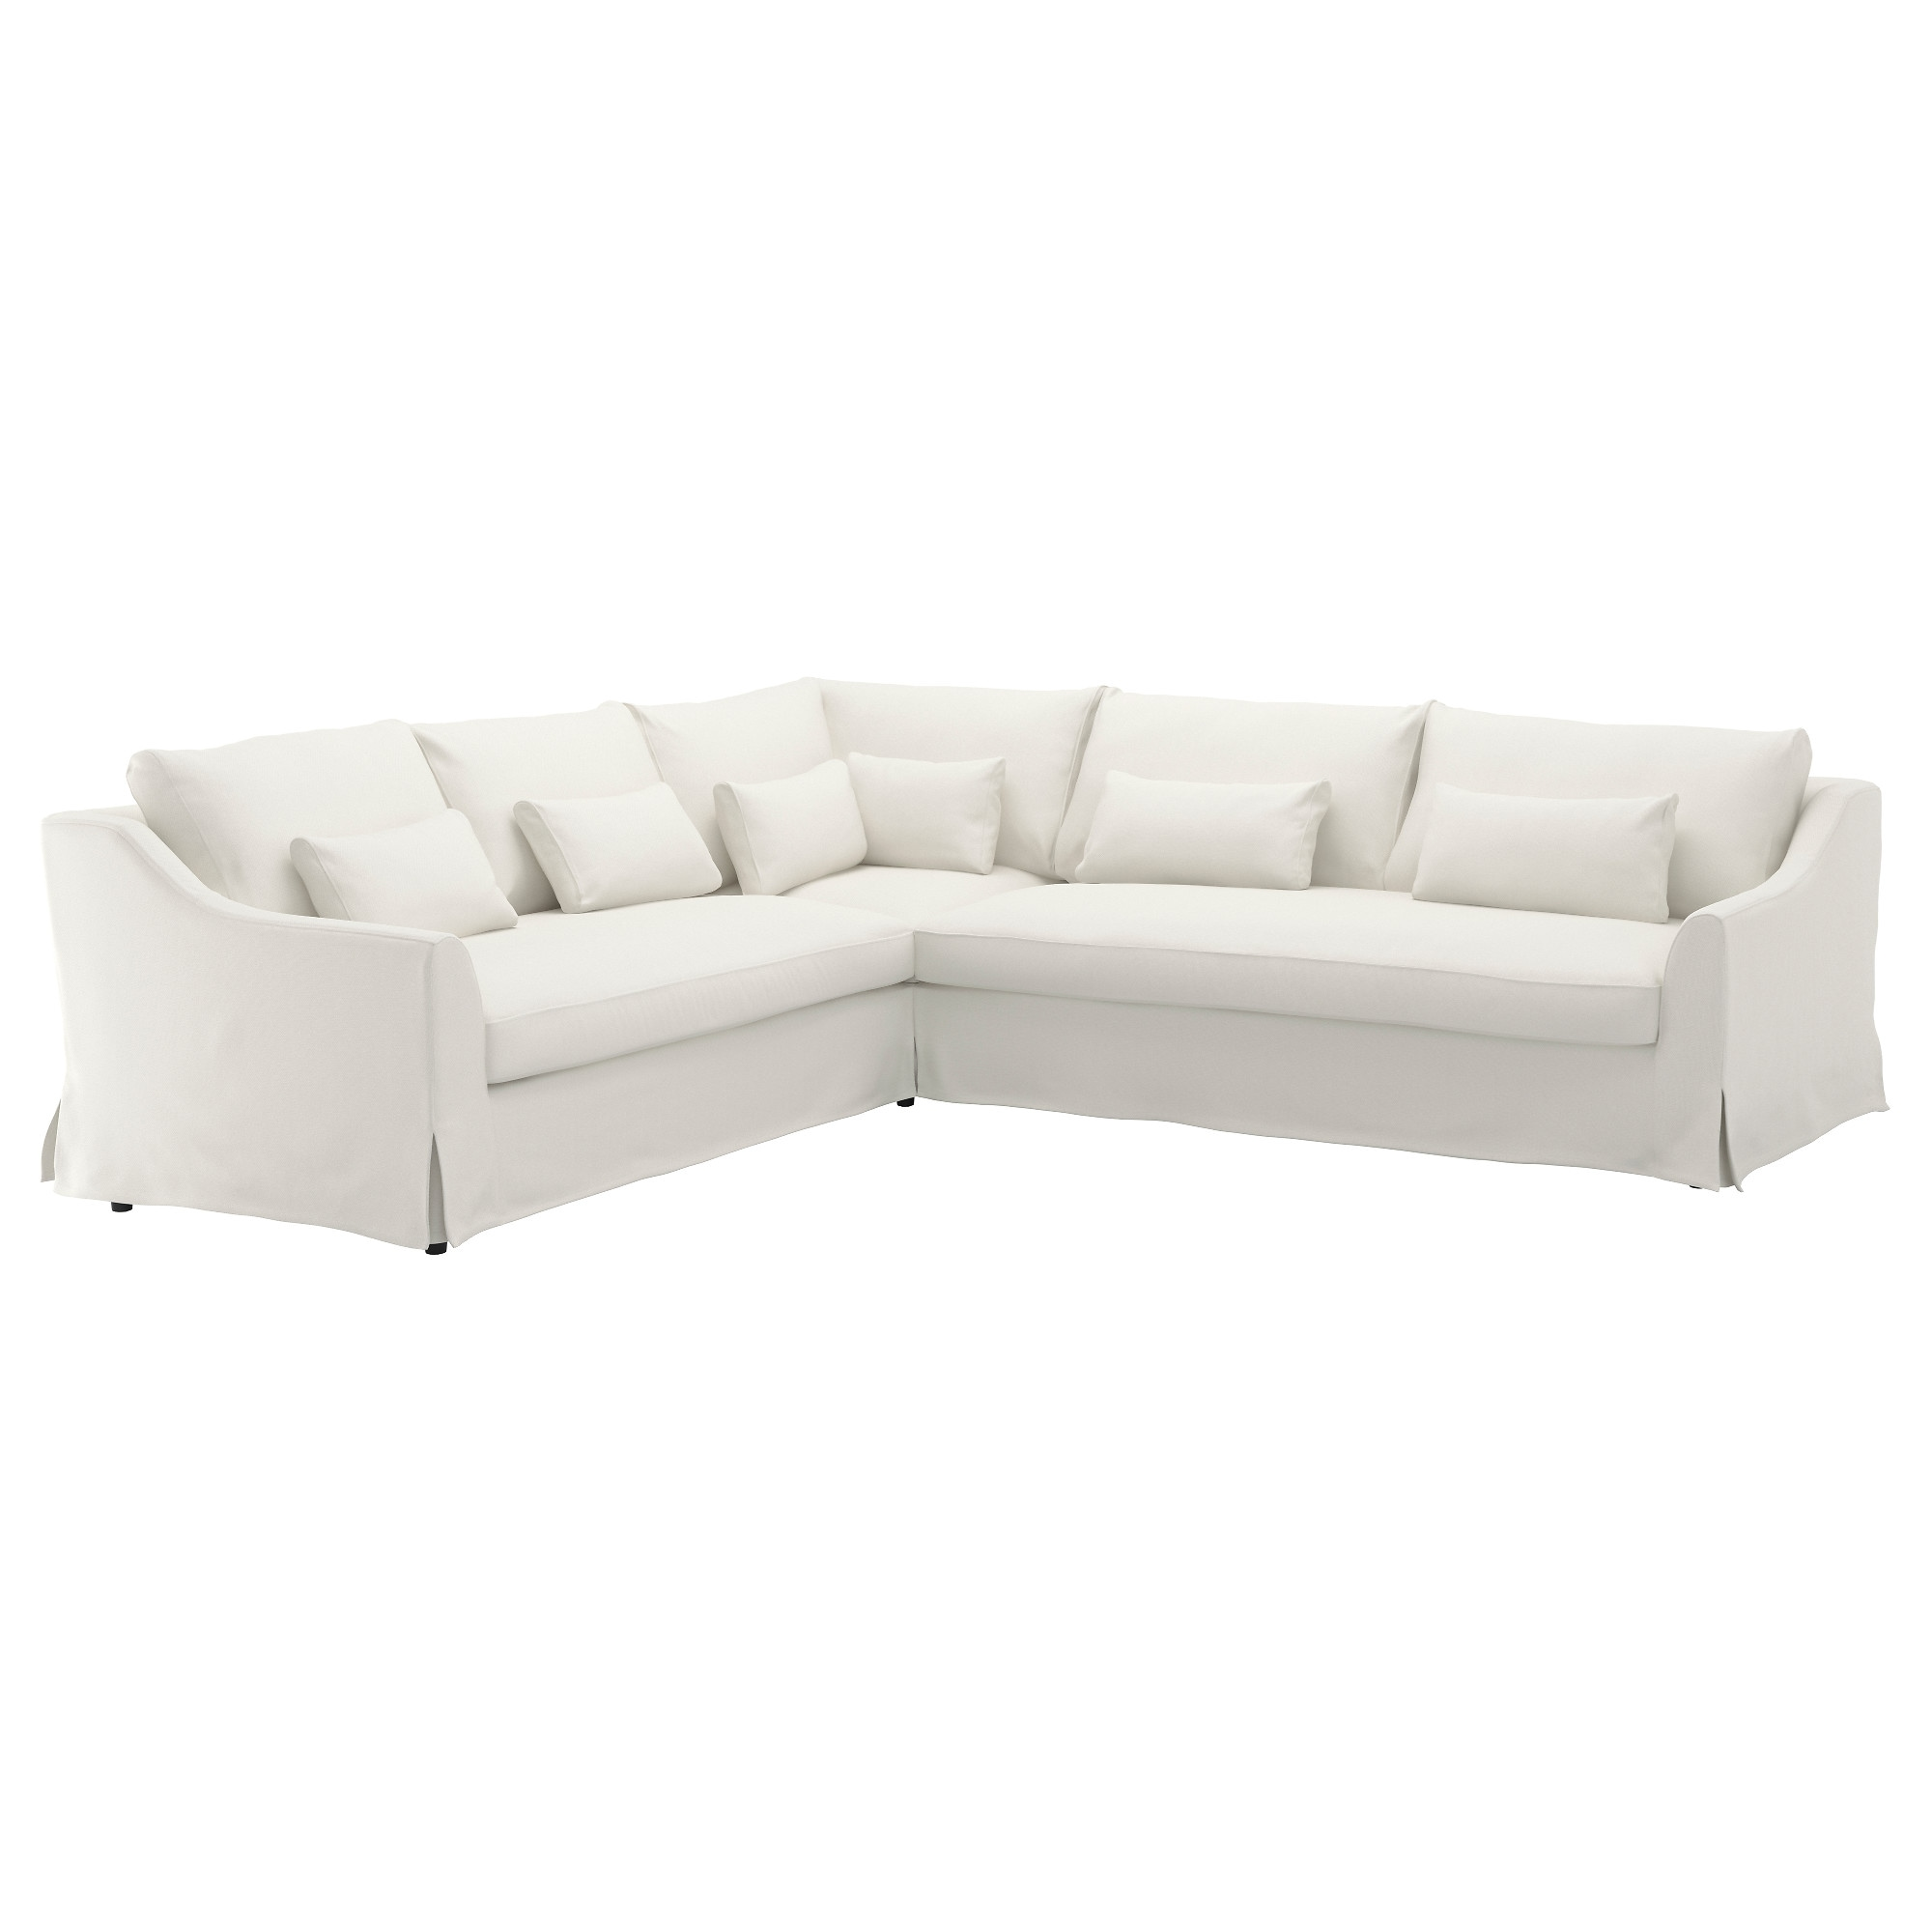 Couch Depth fabric sofas - modern & contemporary - ikea